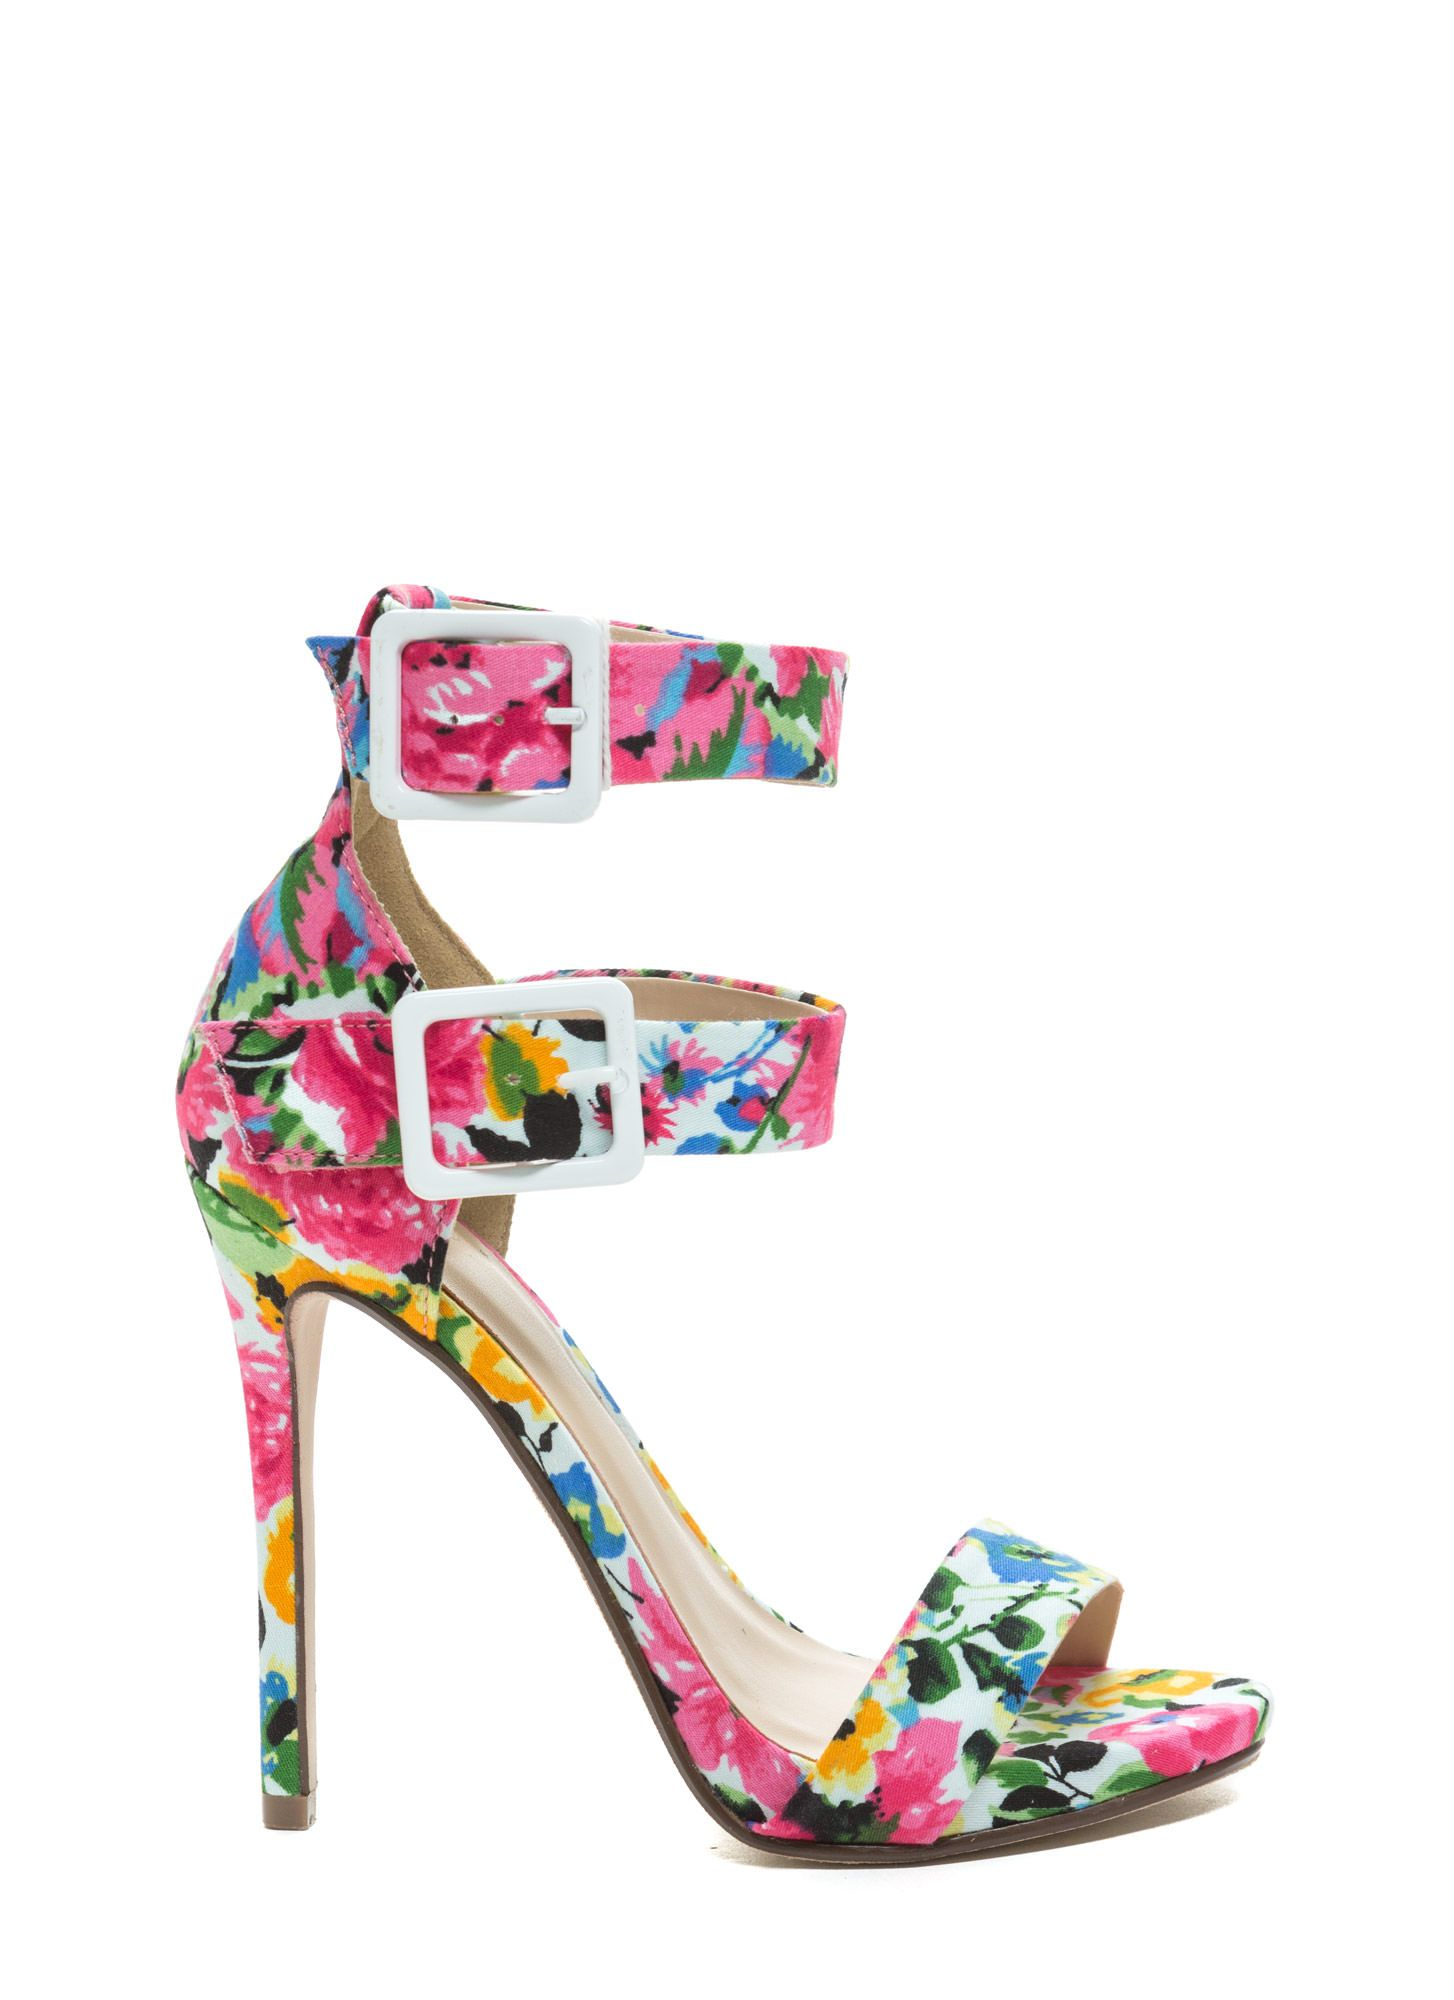 6dfaac537d8 One-Two Punch Floral Strappy Heels | Hello, heels... | Pinterest